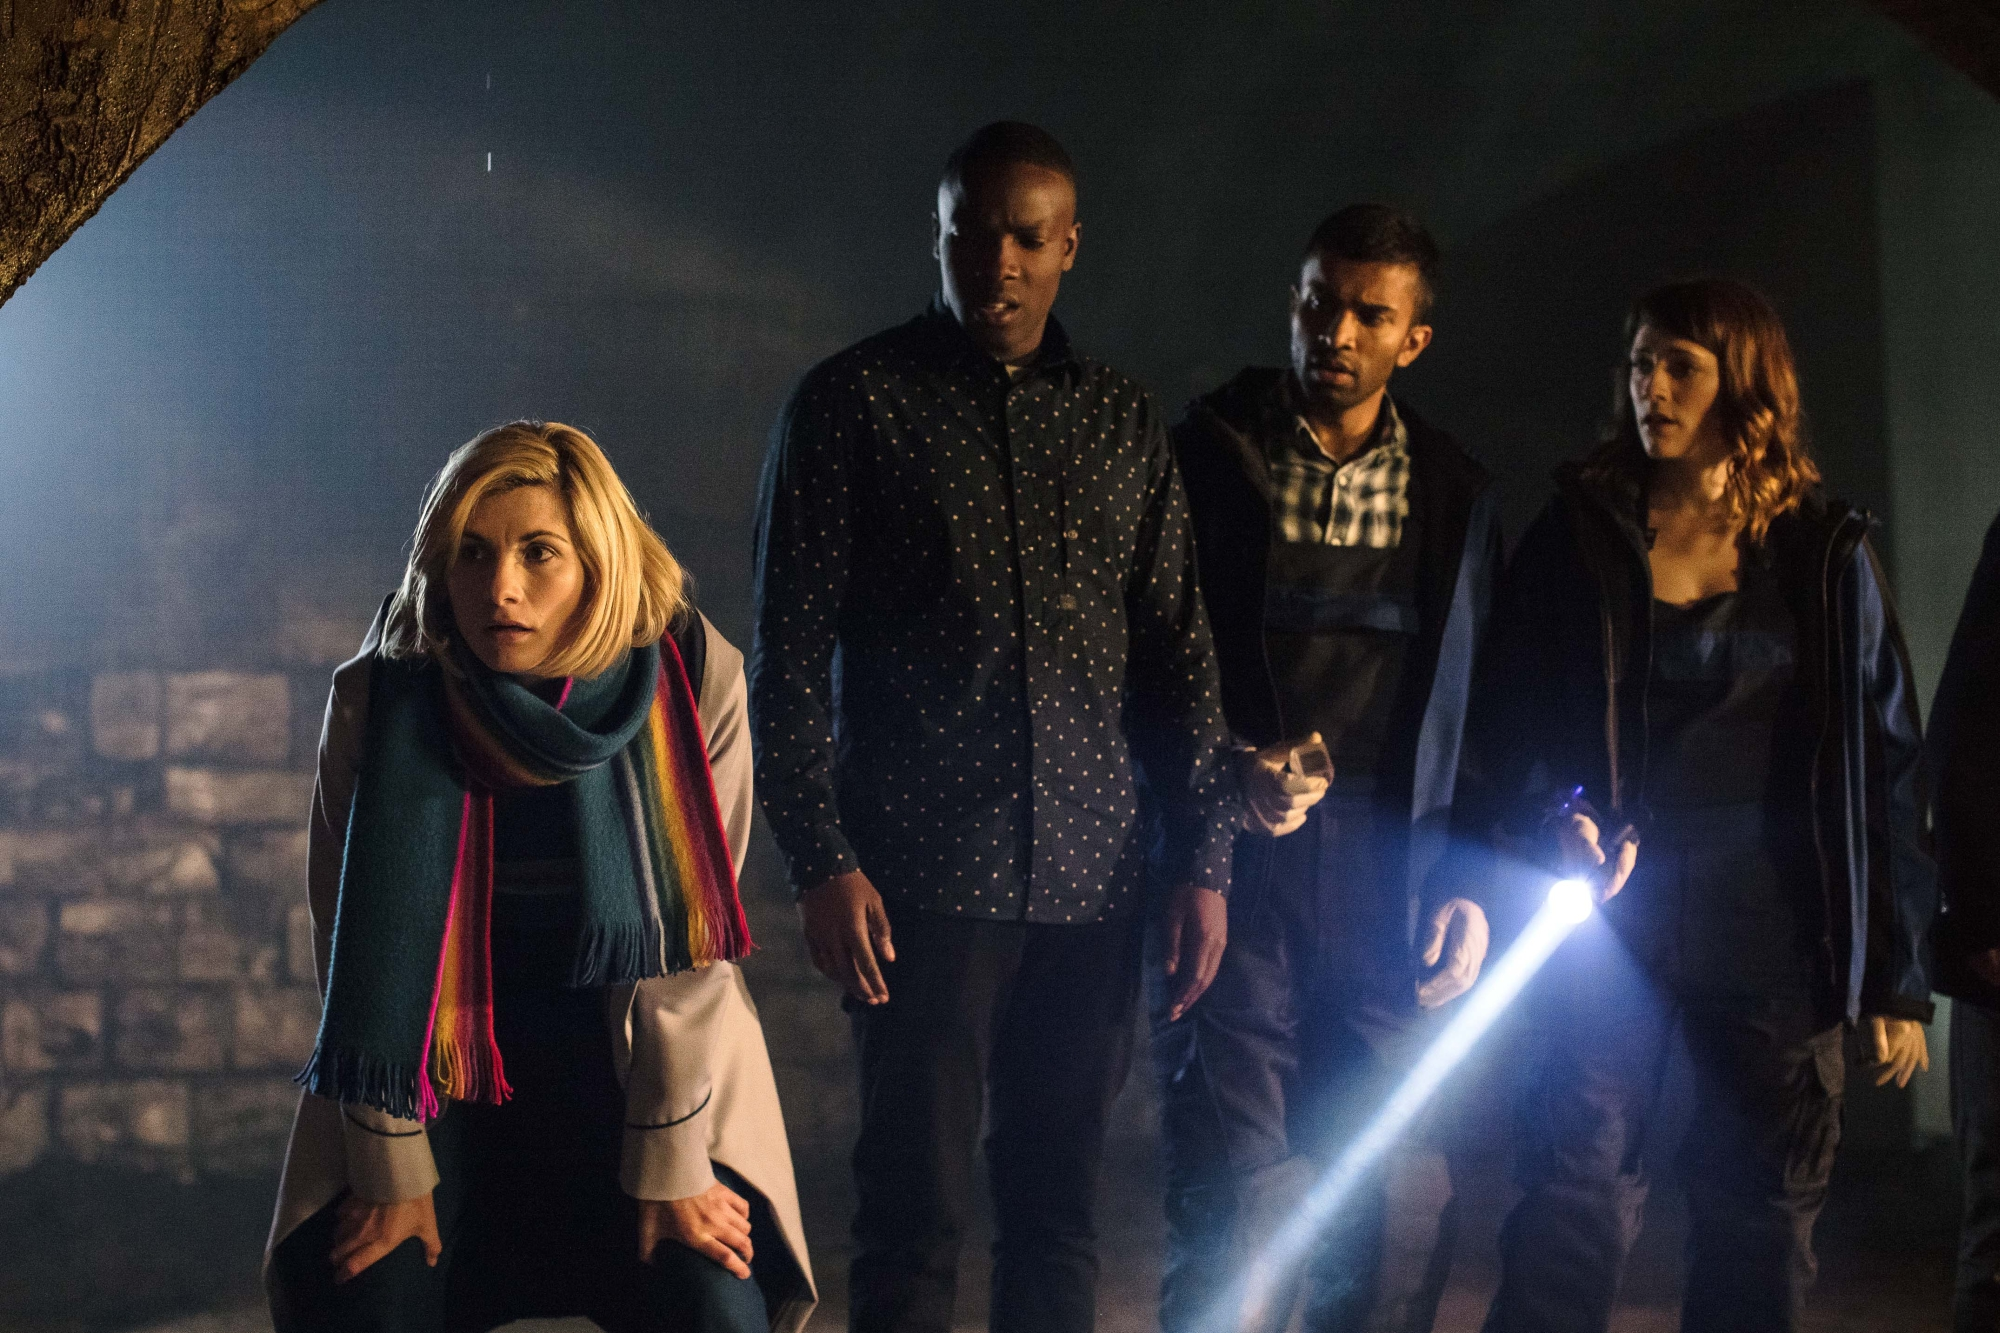 Resolution: The Doctor (JODIE WHITTAKER), Ryan (TOSIN COLE), Mitch (NIKESH PATEL), Lin (CHARLOTTE RITCHIE) (Credit: BBC/Sophie Mutevelian)